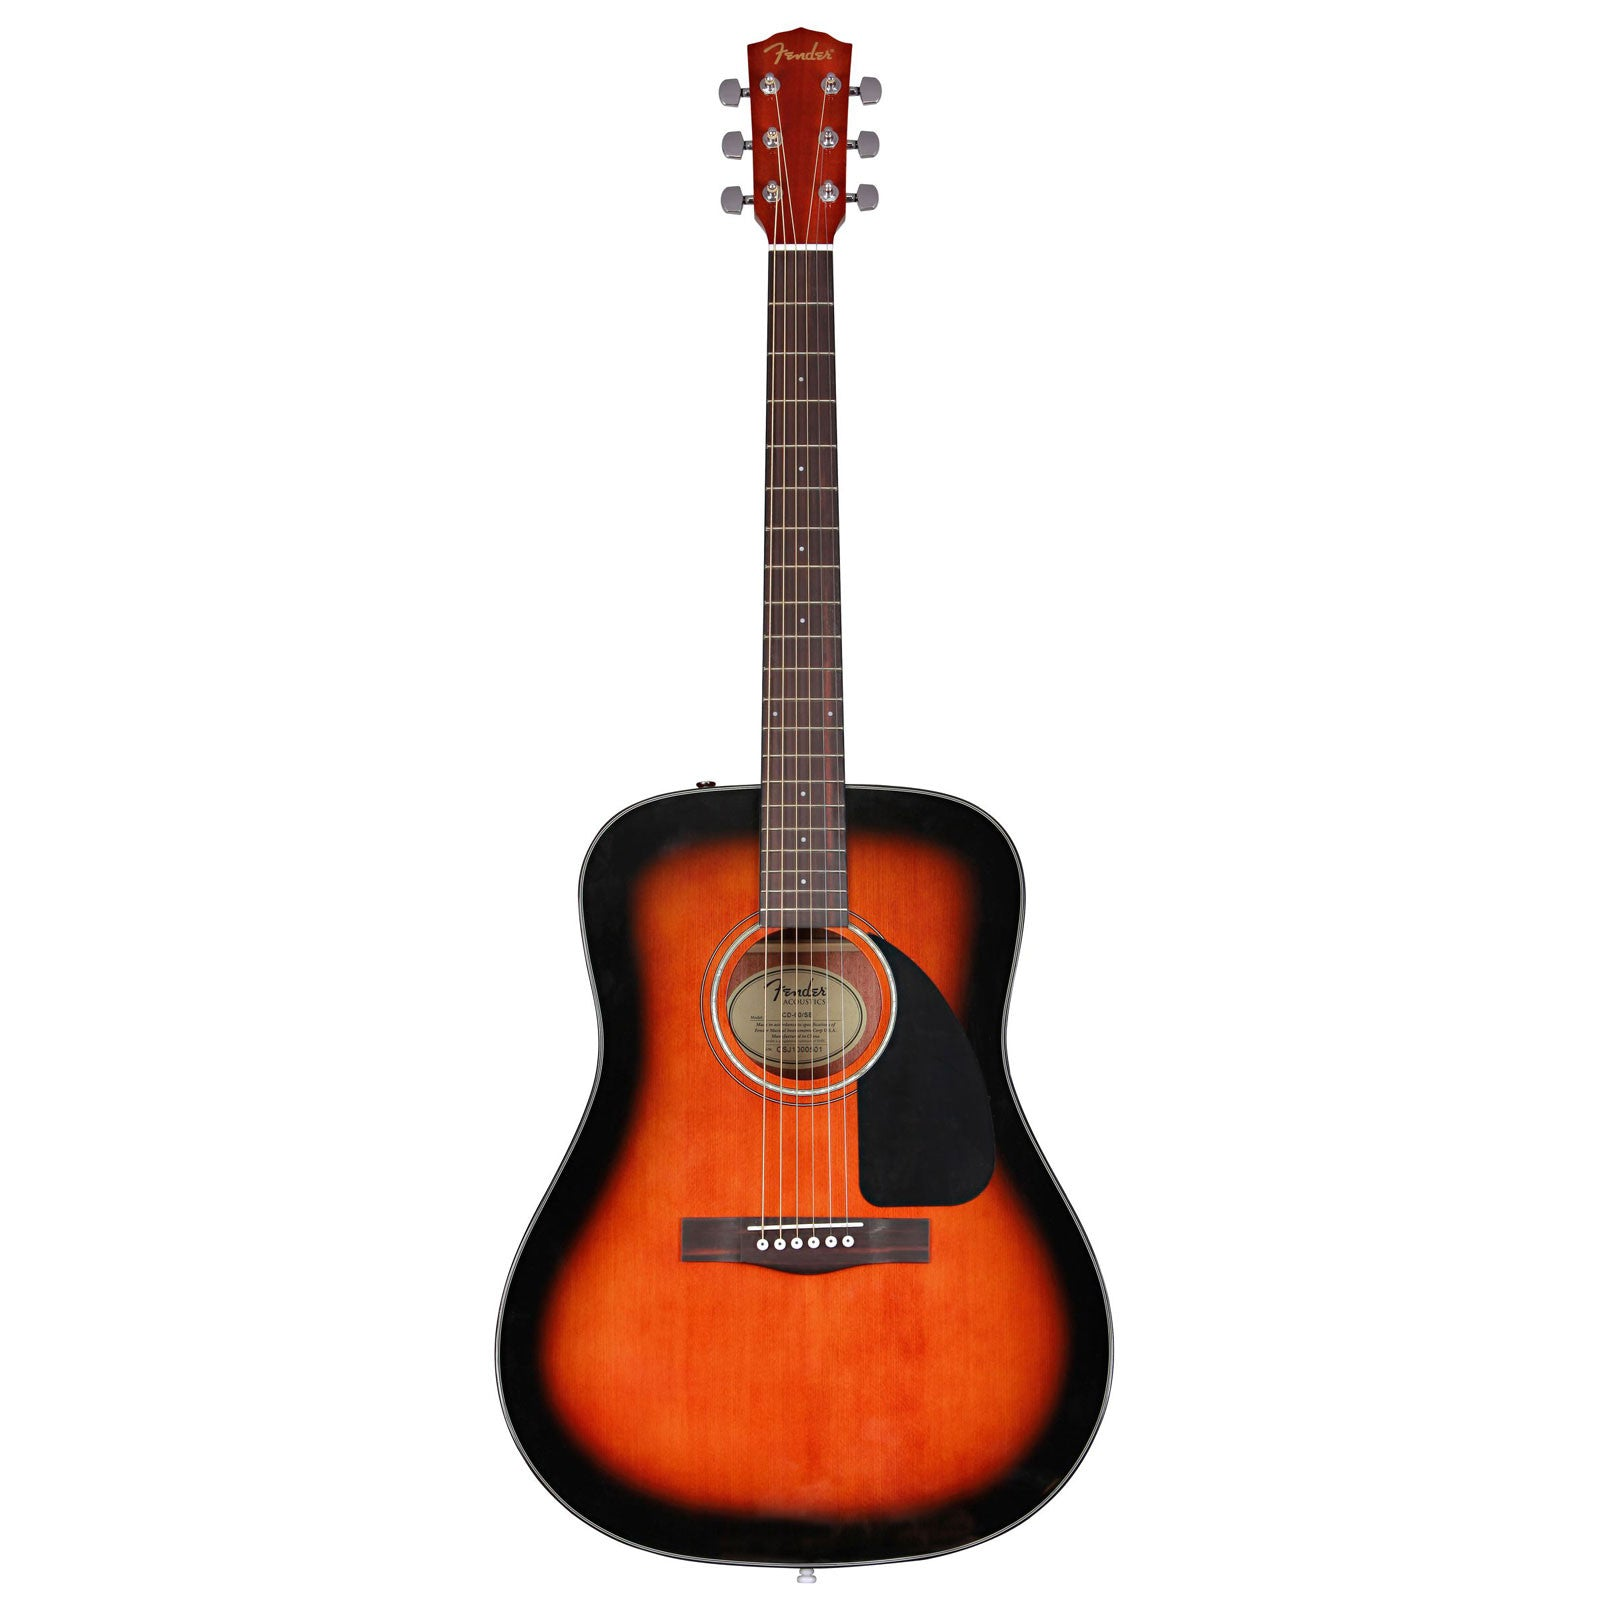 76688426e3f Fender - CD-60 Acoustic Guitar with hard case | Mass Street Music Store